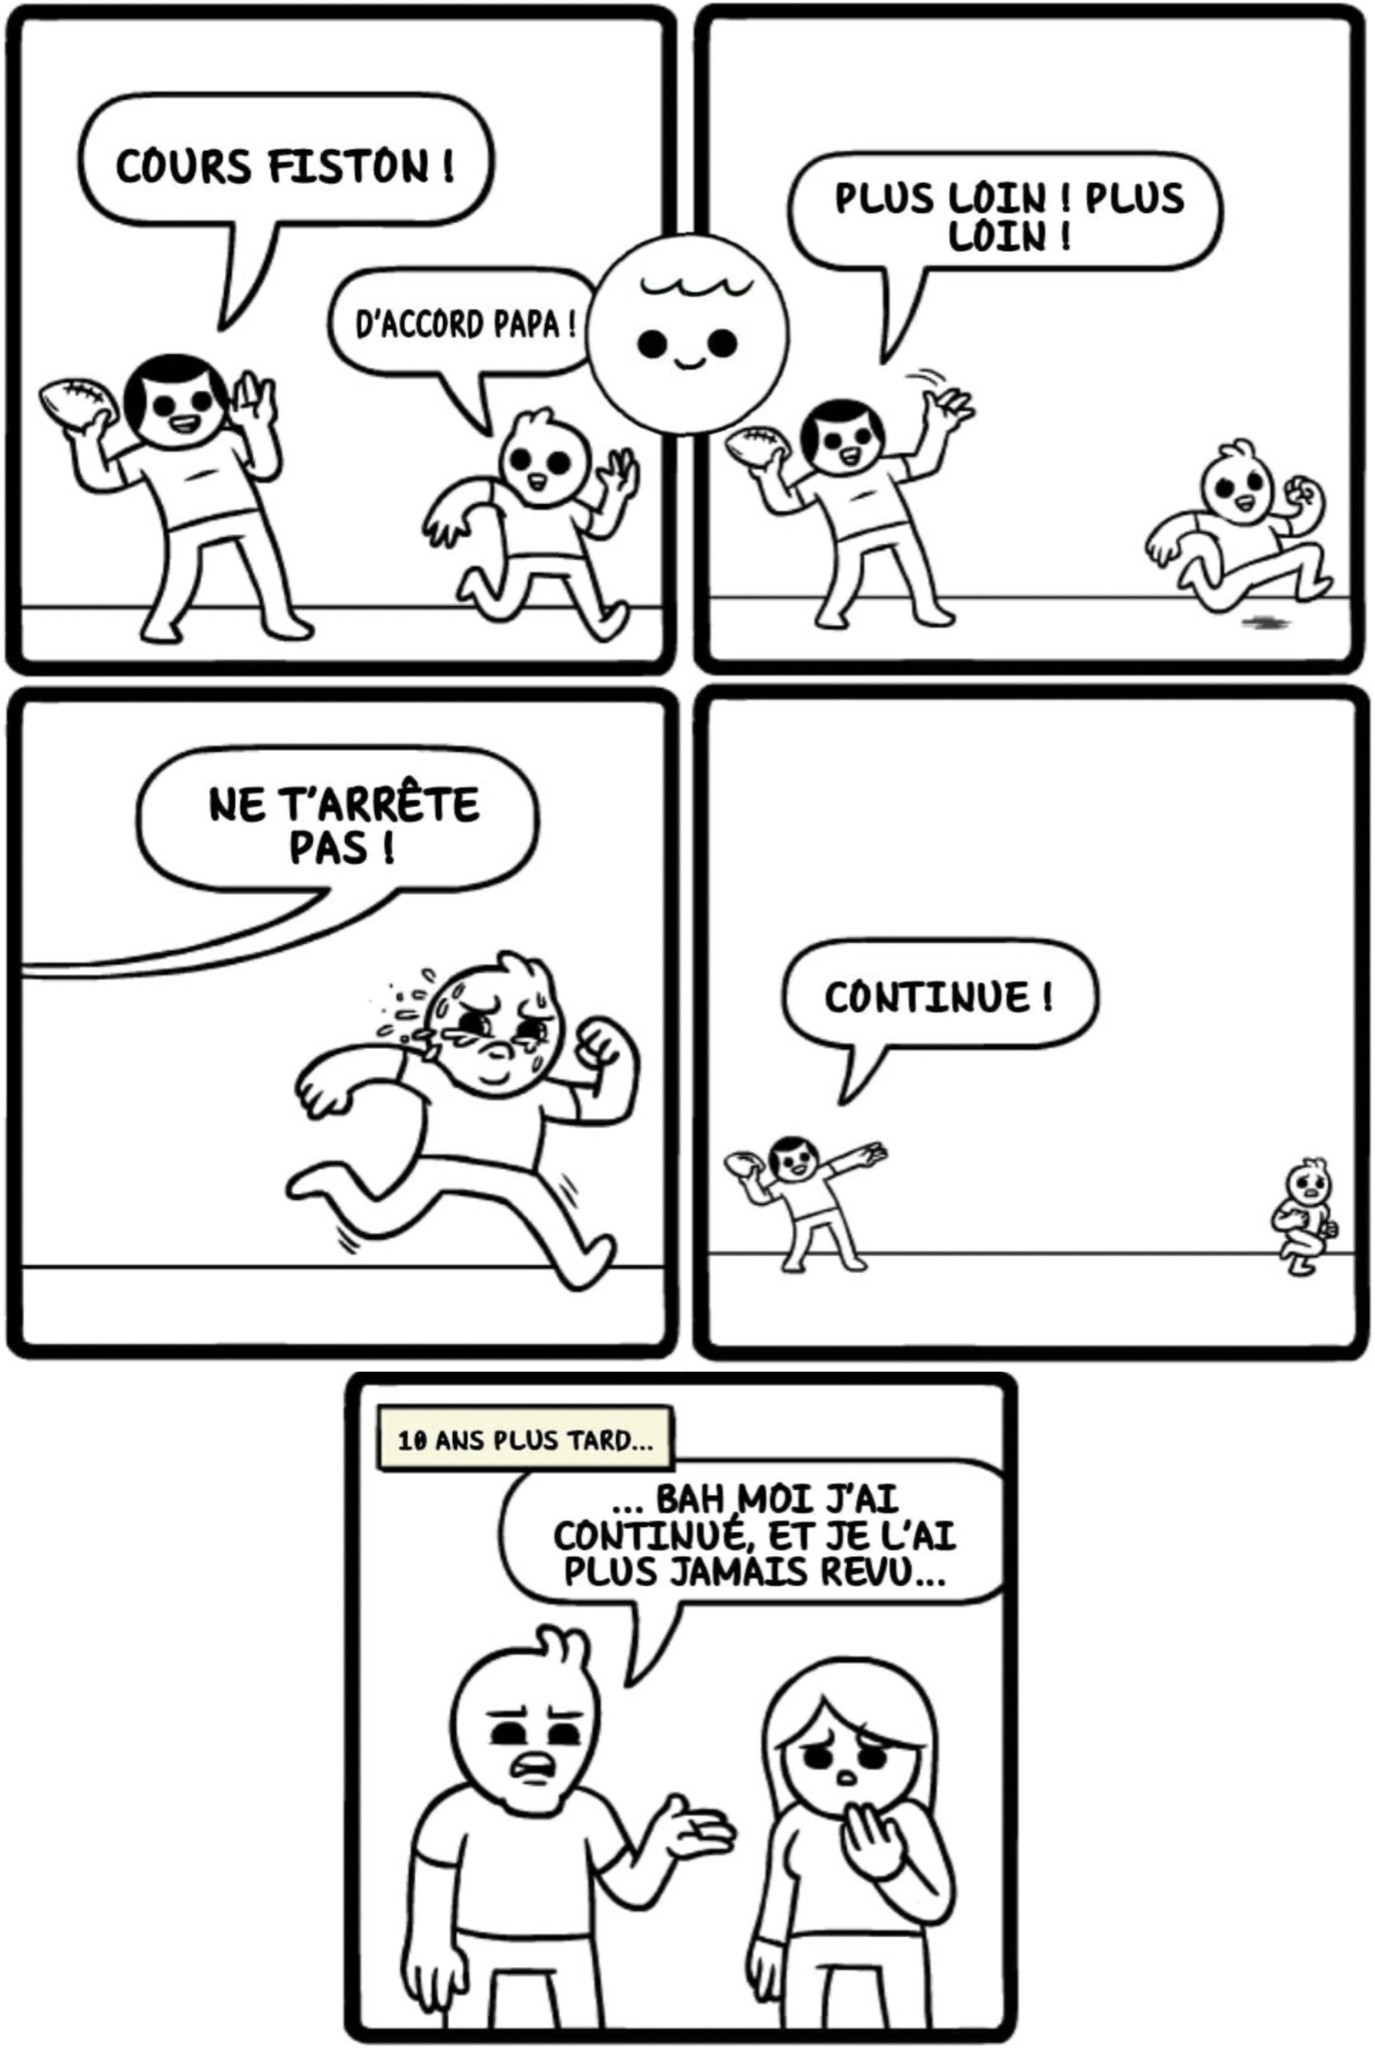 cours forest - meme